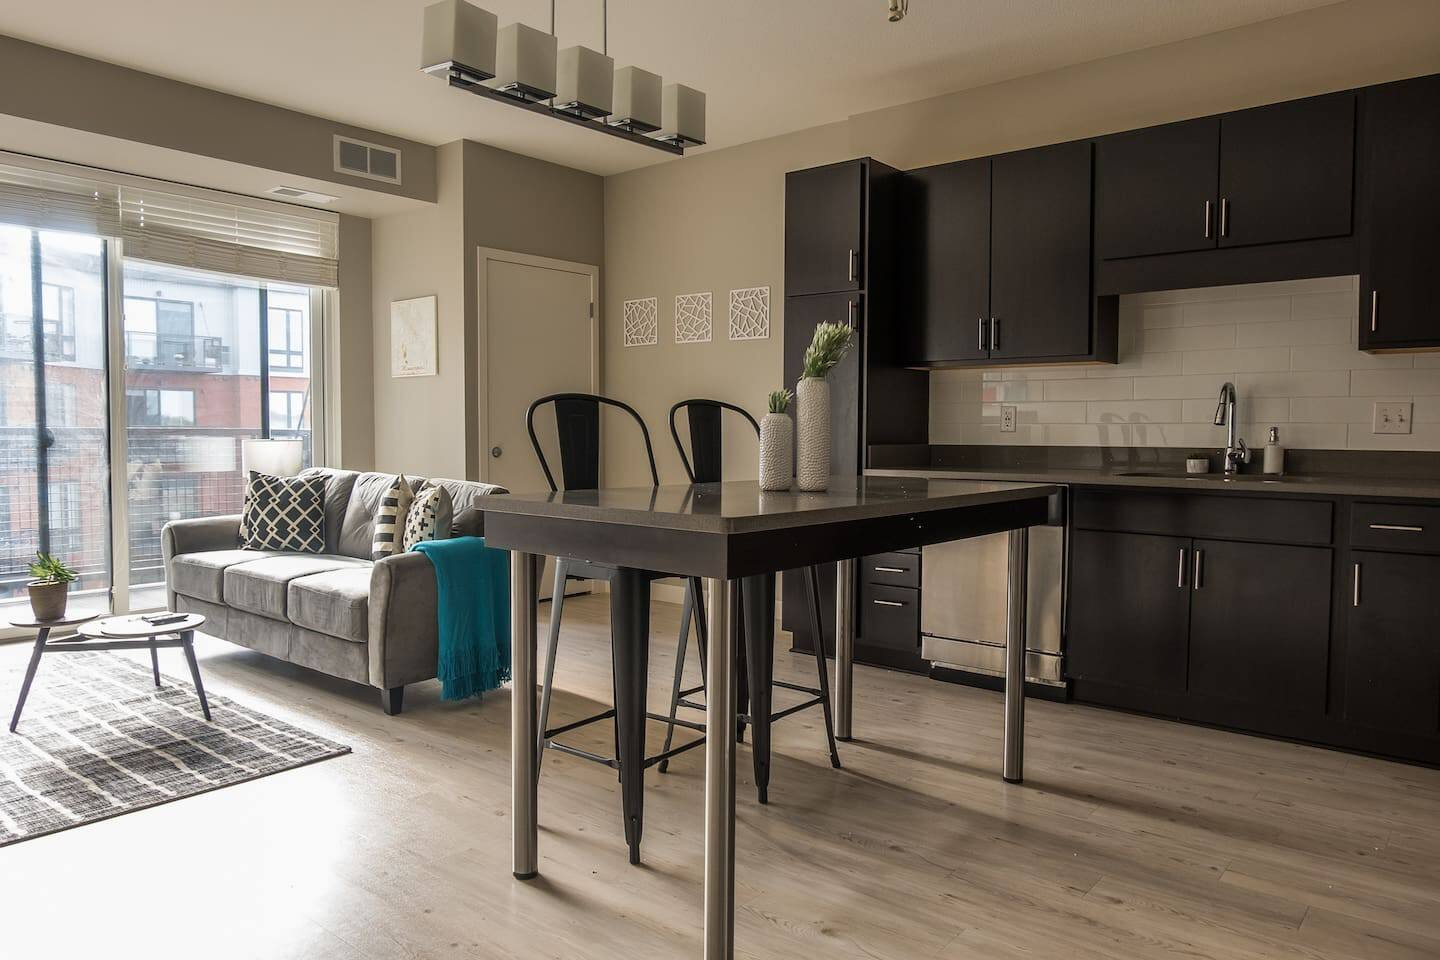 Updated 1BR apartment by the Mississippi River